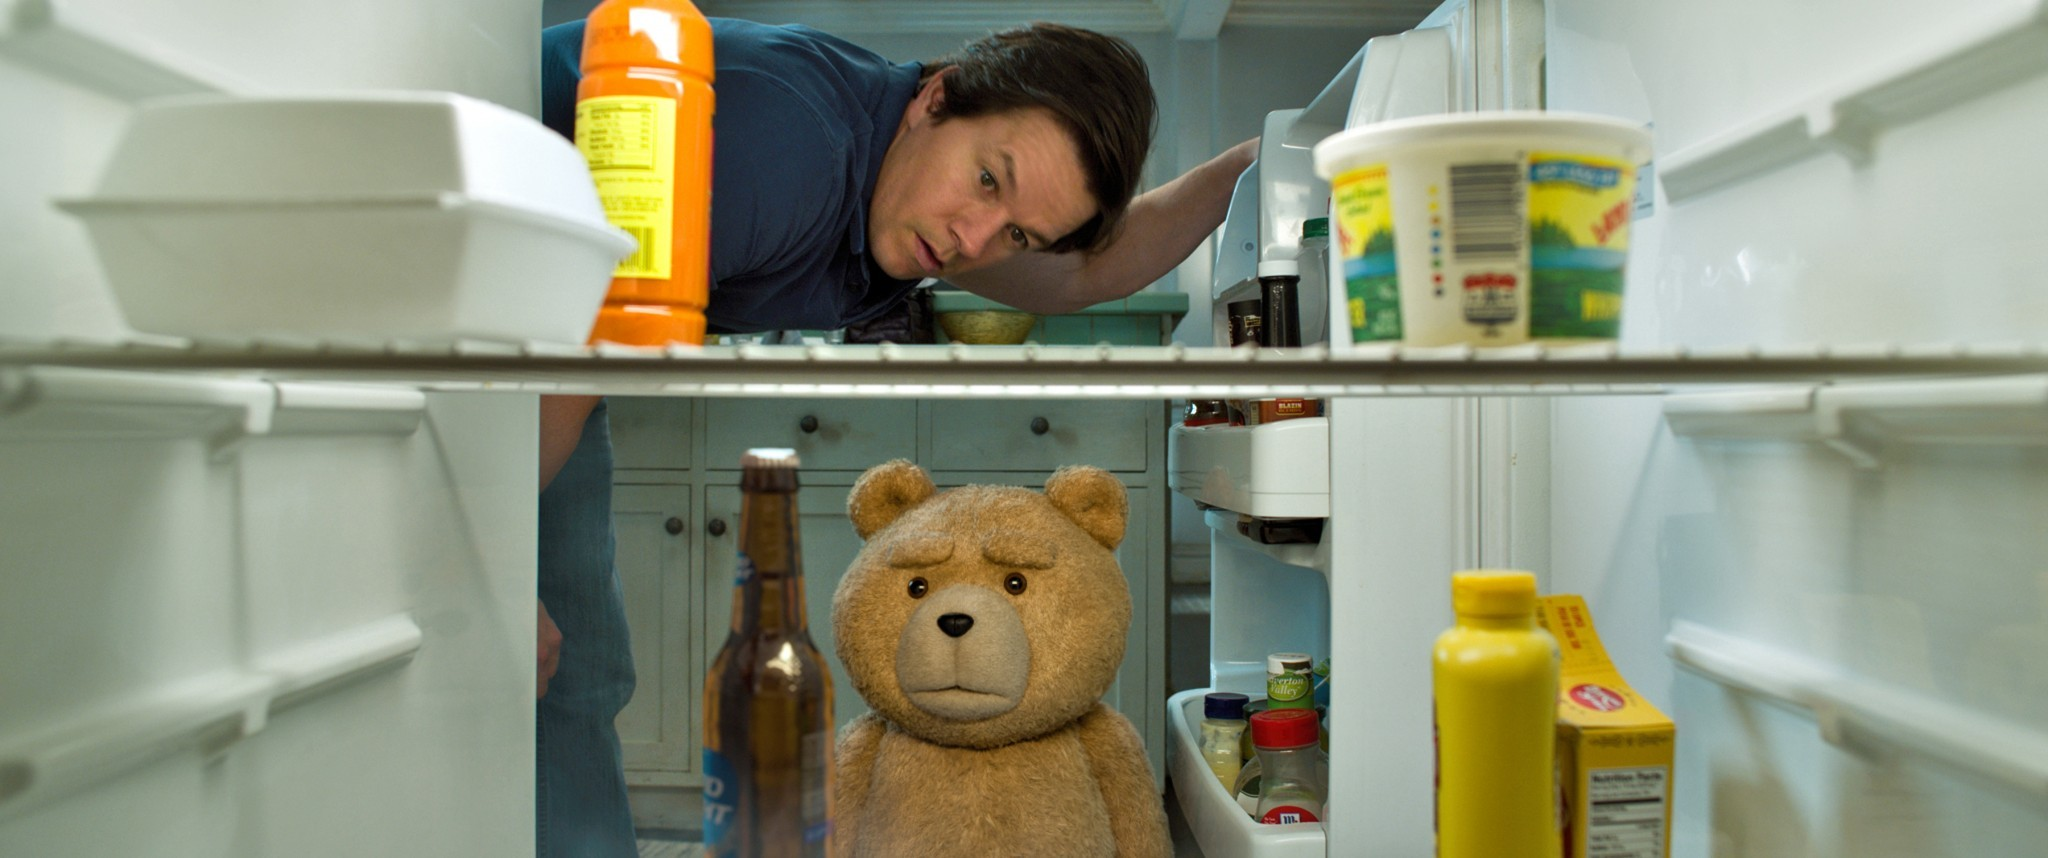 Ted2-image8